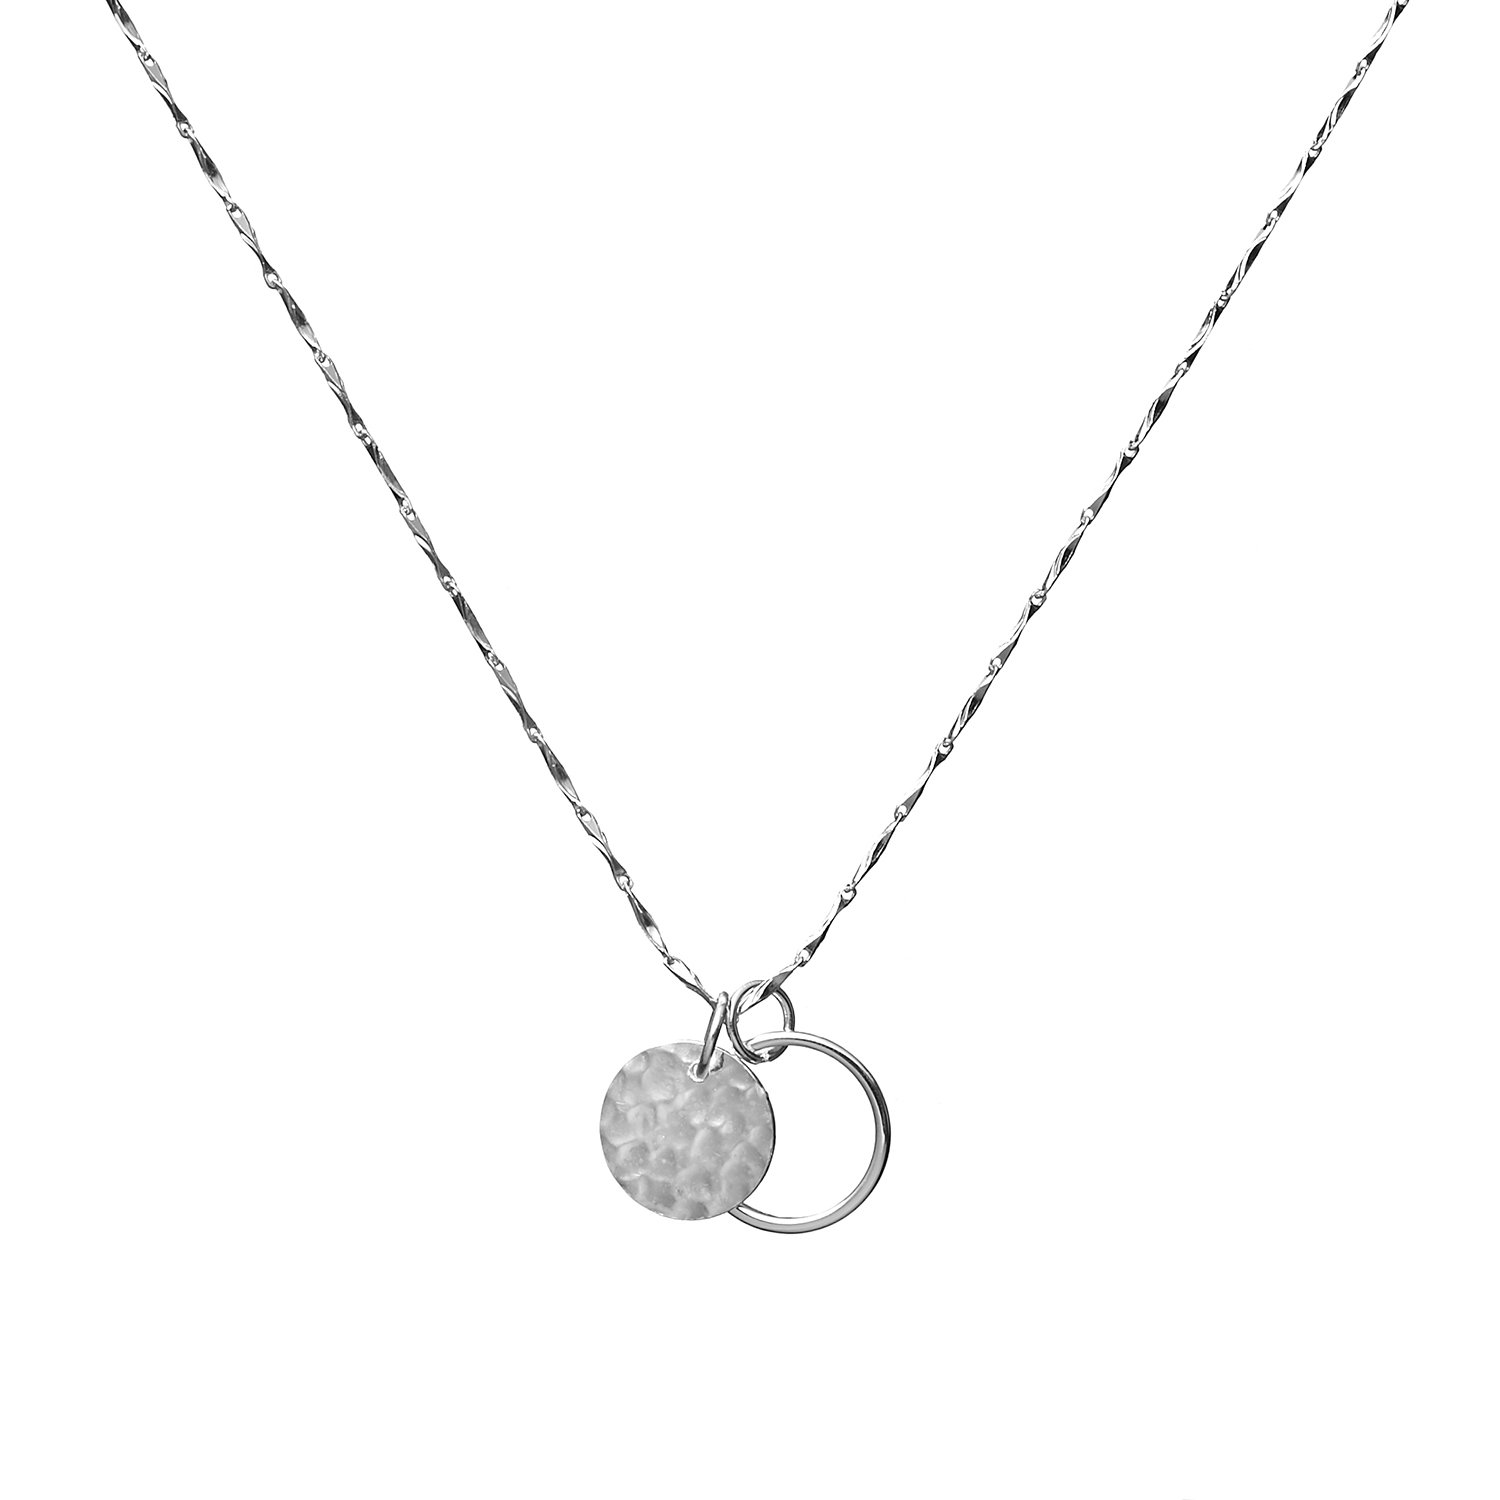 Wellme Sterling Silver Hammered Disc Karma Circle Pendant with 18'' Necklace Chain Fine Jewelry